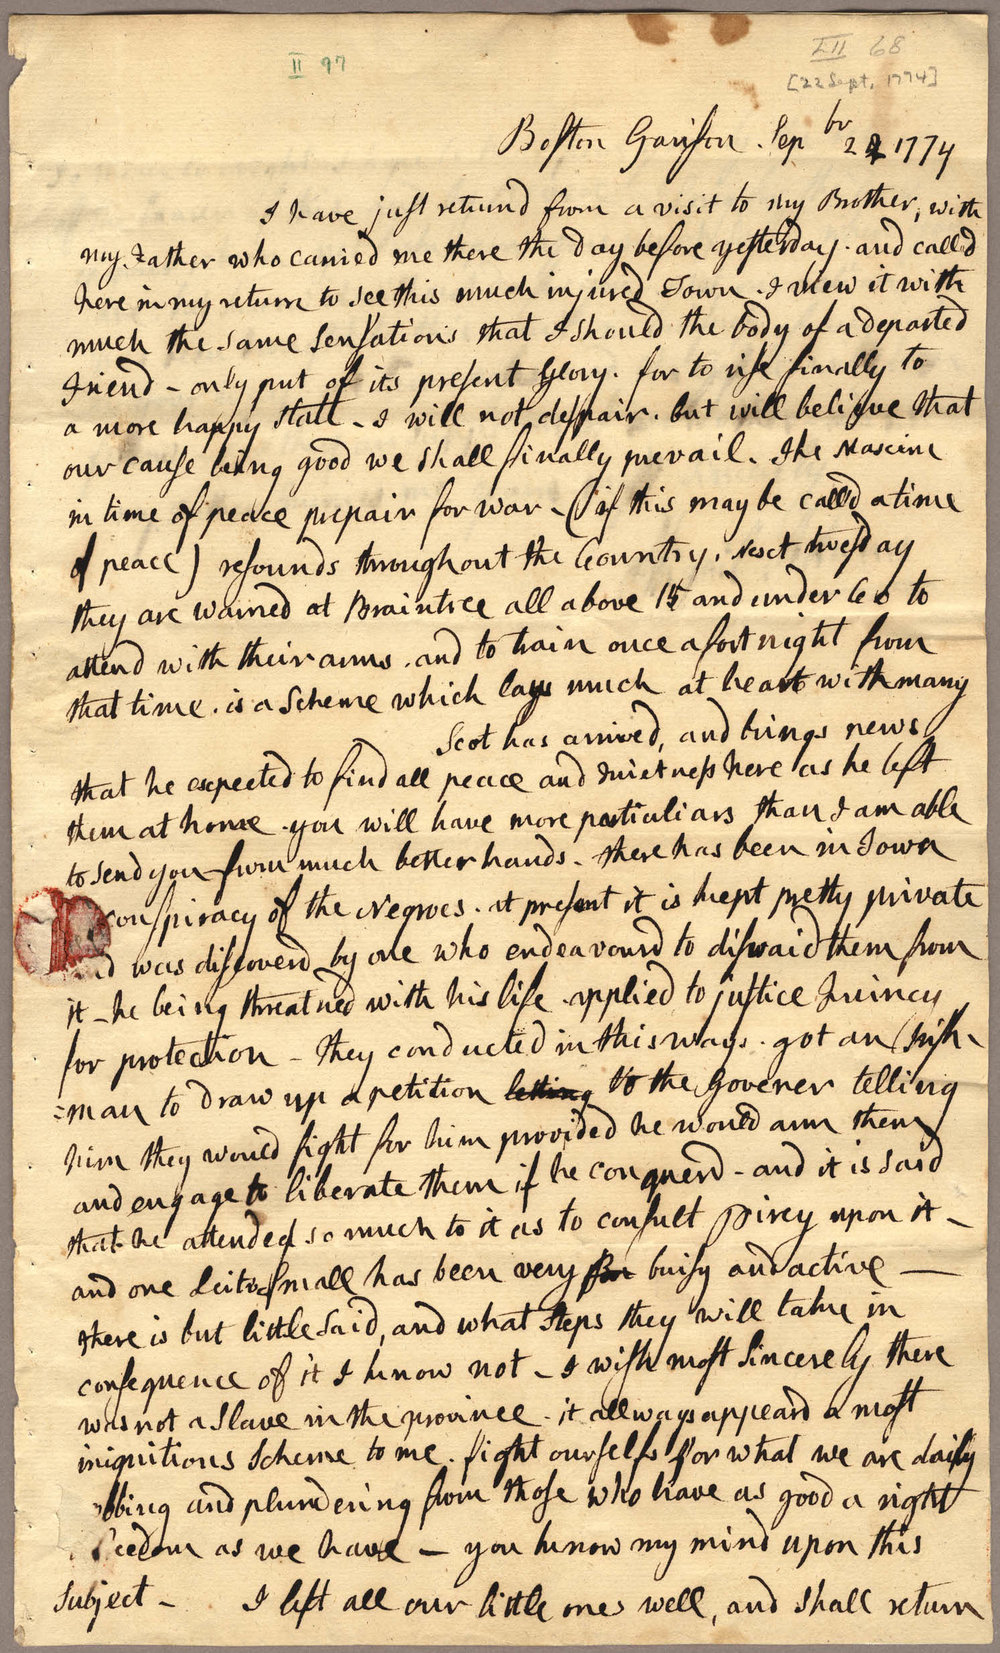 an analysis of the use of metaphor in abigail adams letter of mother to son Original manuscript: adams, abigail letter from abigail adams to john adams, 31 march - 5 april 1776 4 pages original manuscript from the adams family papers.